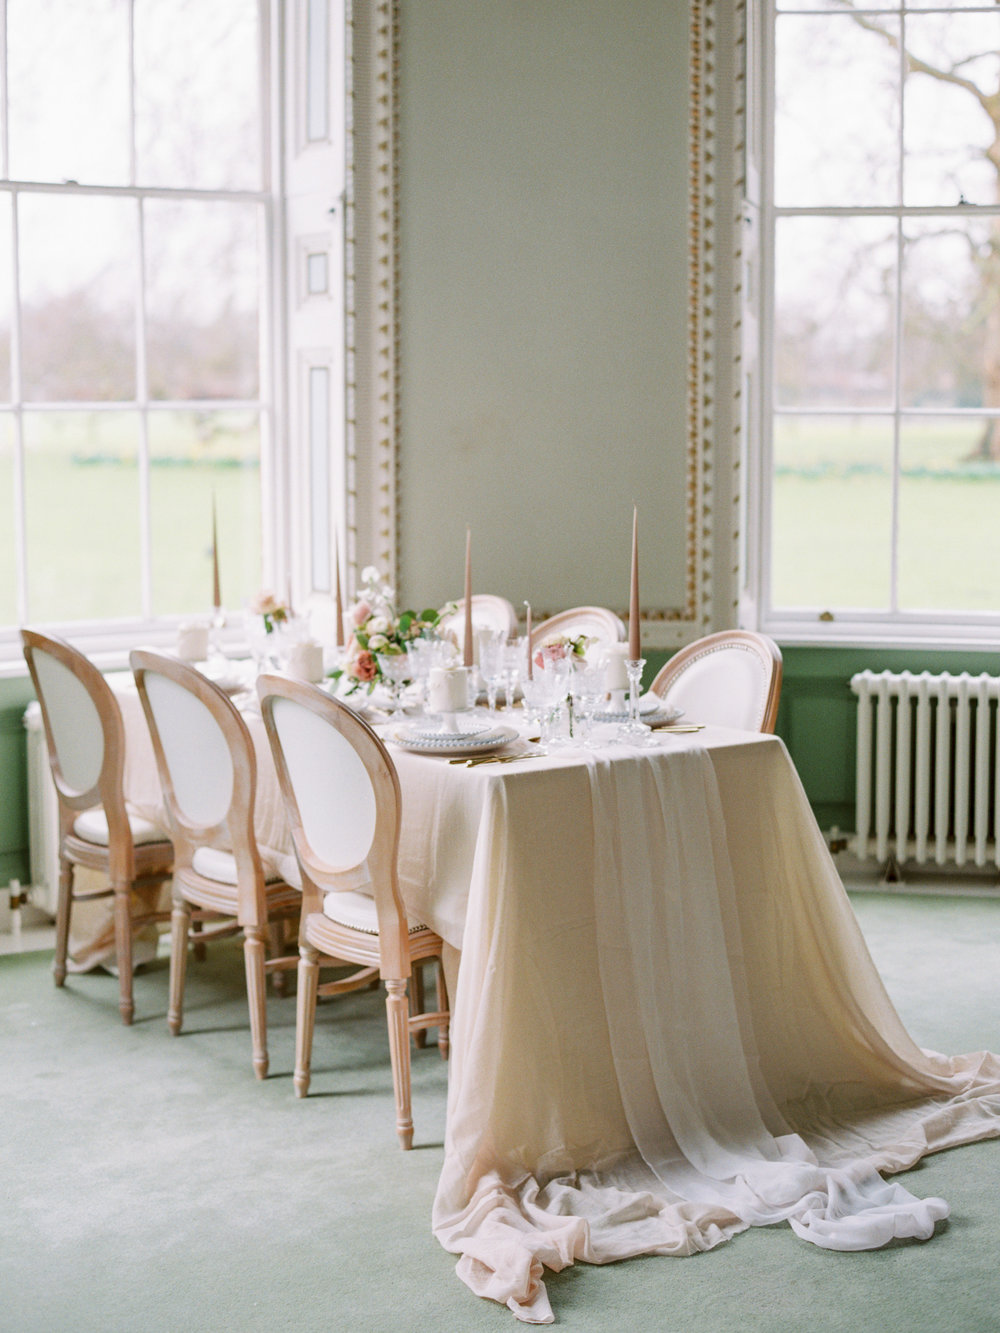 The above photography is by  Hannah Duffy , shot at  Bradbourne House  with tableware by  Duchess & Butler , linen by  Silk & Purl , chairs by  Academy Furniture Hire  and flowers by  Catherine Short . Cakes are by  Little Cake Garden  and stationery is by  Mango Tree London . All design and styling is by me, The Timeless Stylist, and I had  The Event Designers  assist me in the planning on the day.